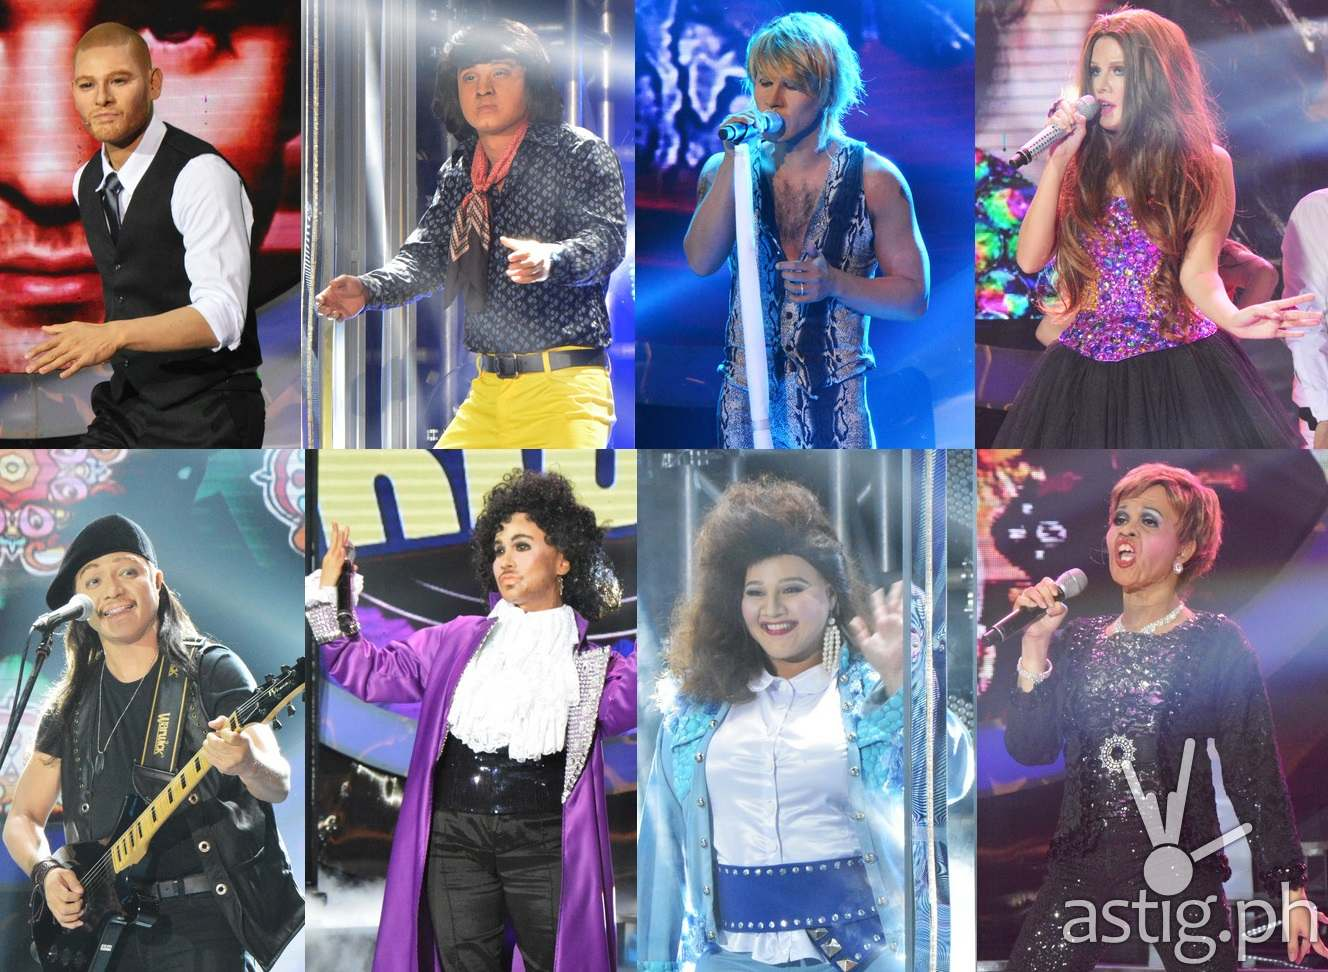 Jay-R as Justin Timberlake, EA as Victor Wood, Tutti as Jon Bon Jovi, Maxene as Selena Gomez, Nyoy as